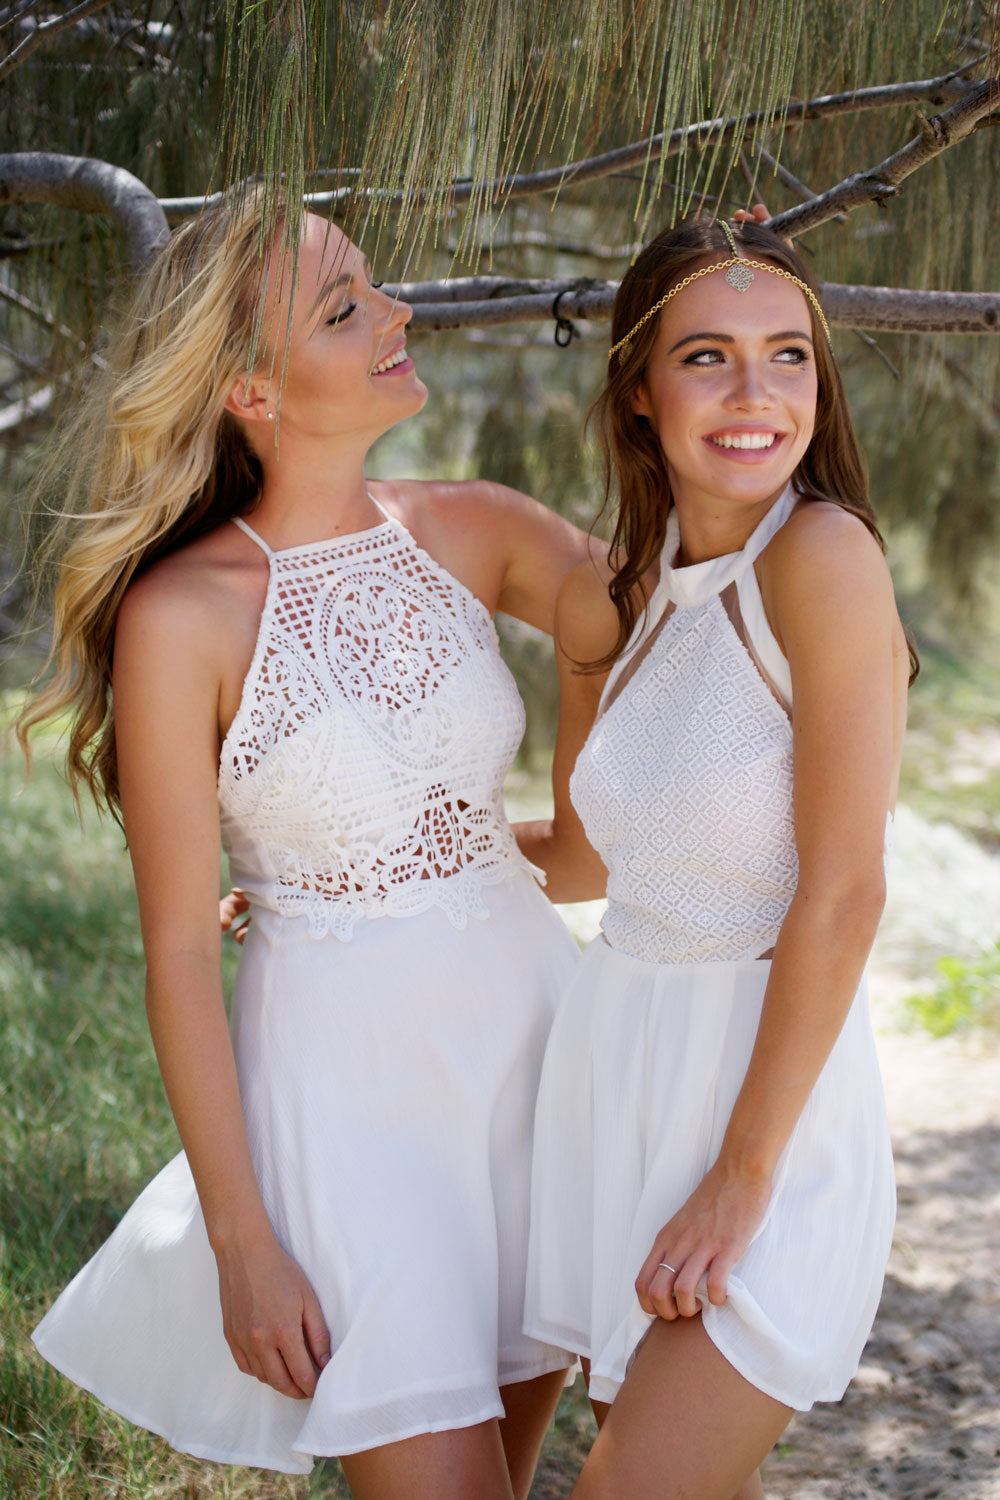 Two models standing under a tree modelling white lace garments